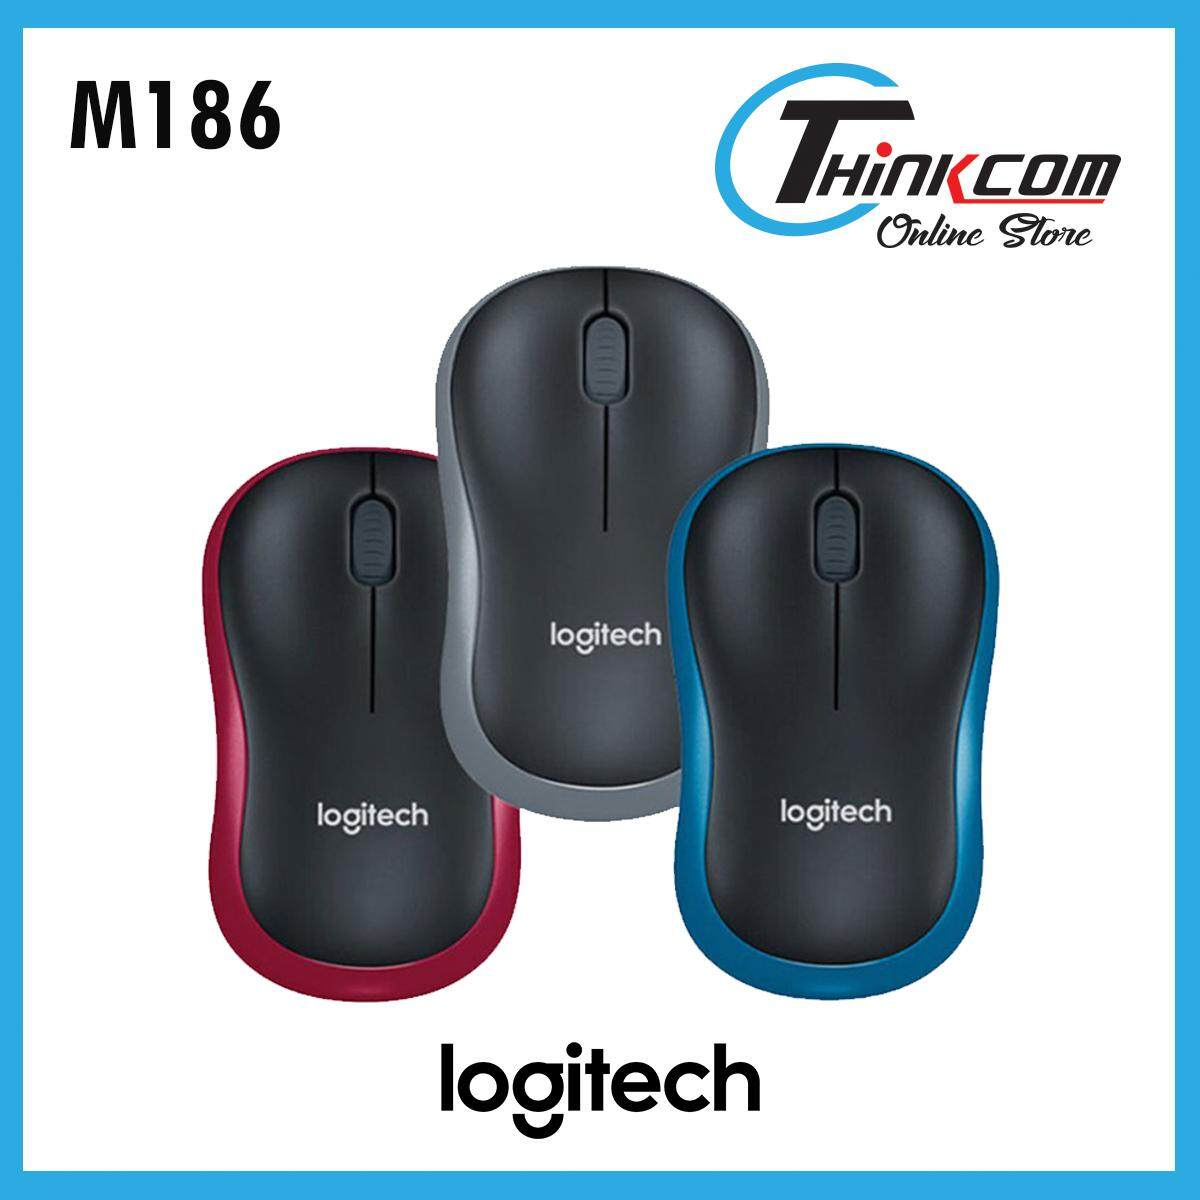 Logitech M186 Wireless Mouse - 1 Year 1 To 1 Exchange Warranty Malaysia